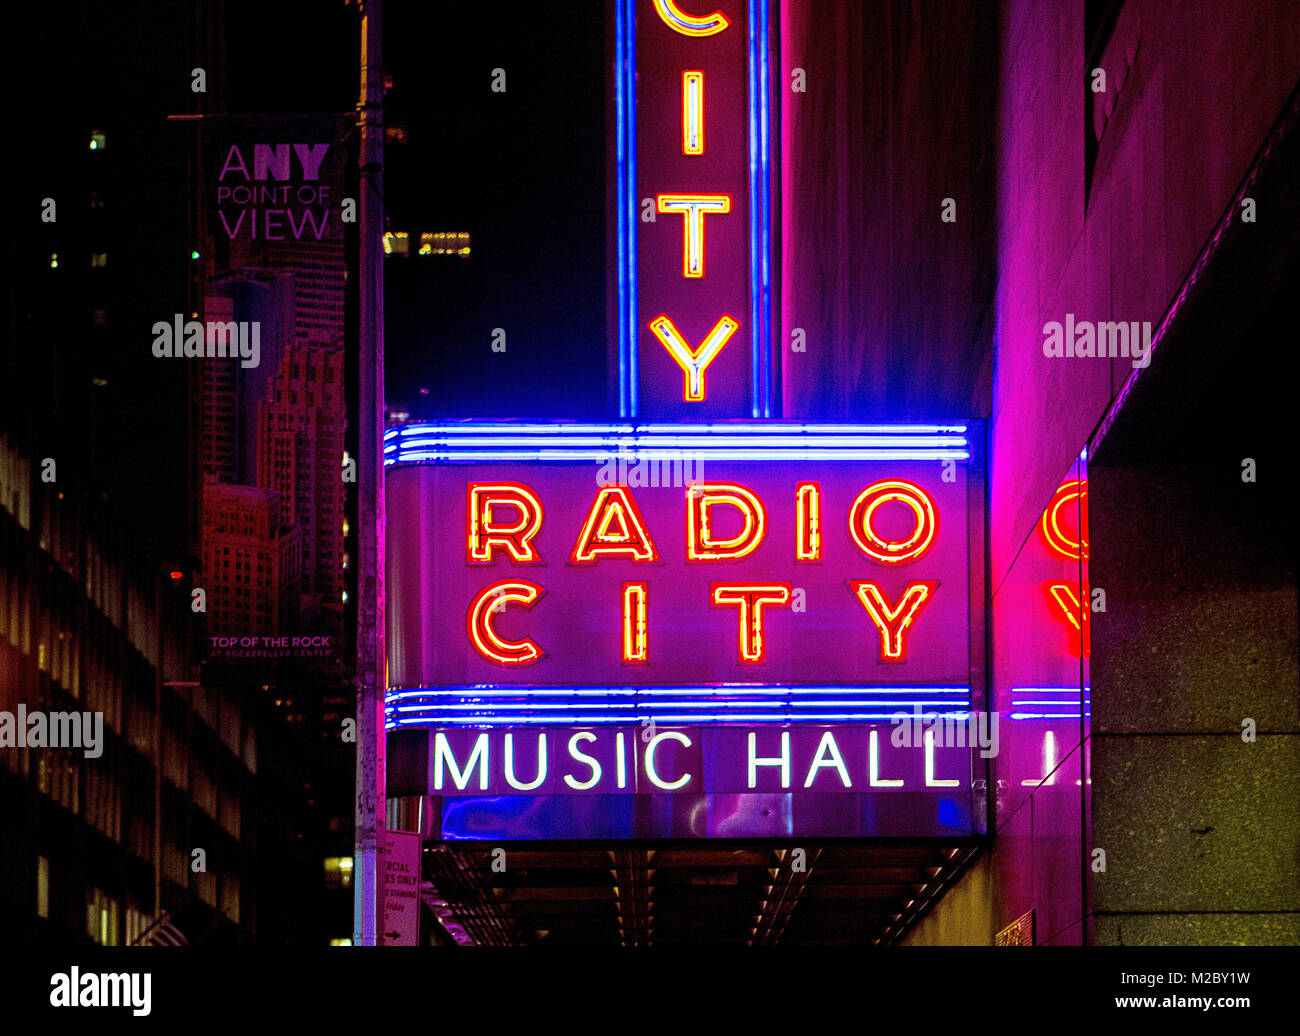 outside neon lights of radio city music hall in new york, usa, - Stock Image